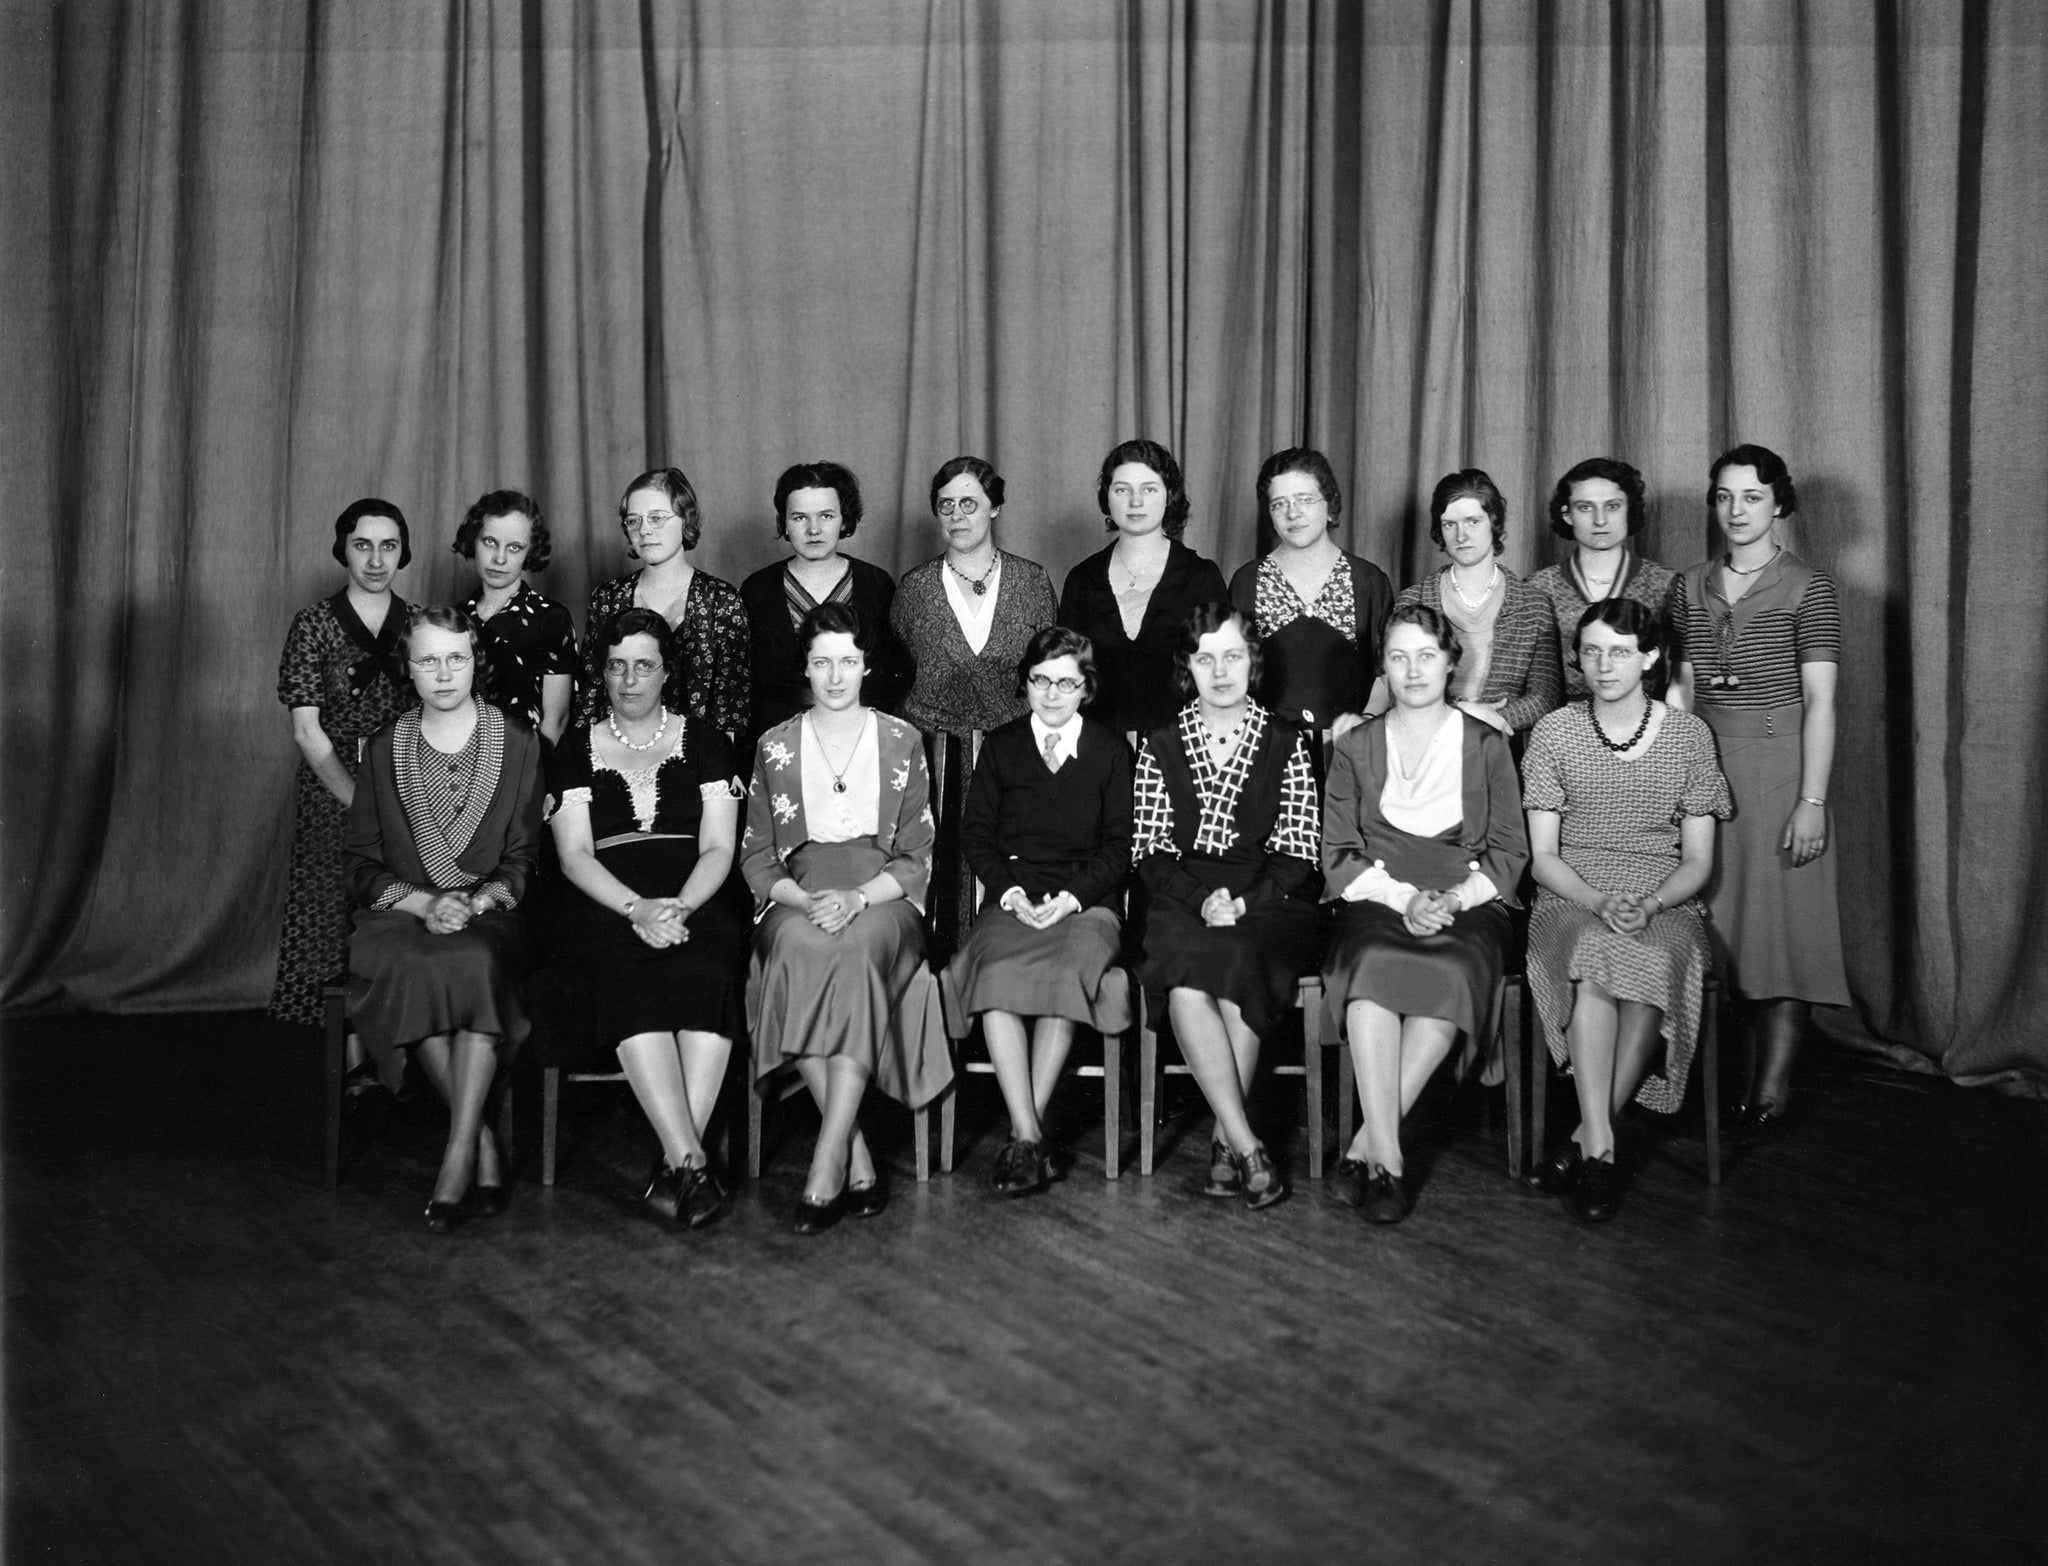 The League of Women Voters at Mankato State Teacher's College, 1933. In the back row: O. Felton, L. Schwan, V. Wahlstrom, D. Kraus, Sara Norriss, B. Anderson, D. Dalsgaard, R. Hegwood, C. Mahal, S. Kanne. In the front row: I. Peterson, P. Lien, H. Byron, R. Babcock, E. Johnson. -- University Archives at Minnesota State University, Mankato